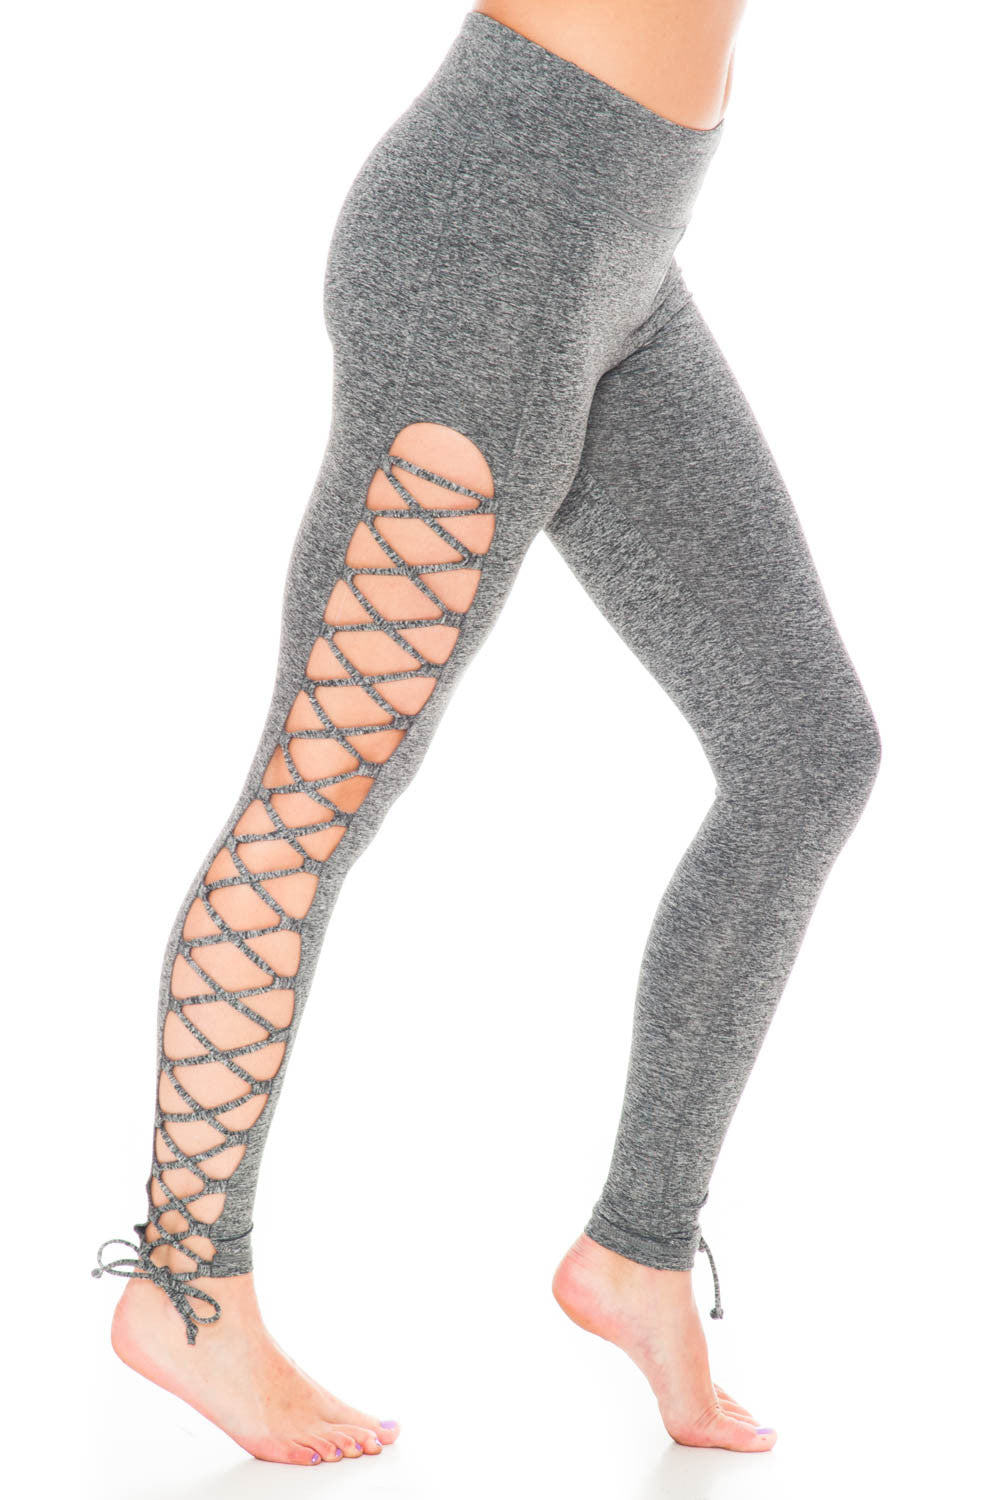 Legging - Lace Up Side Yoga Pant by Motion by Coalition